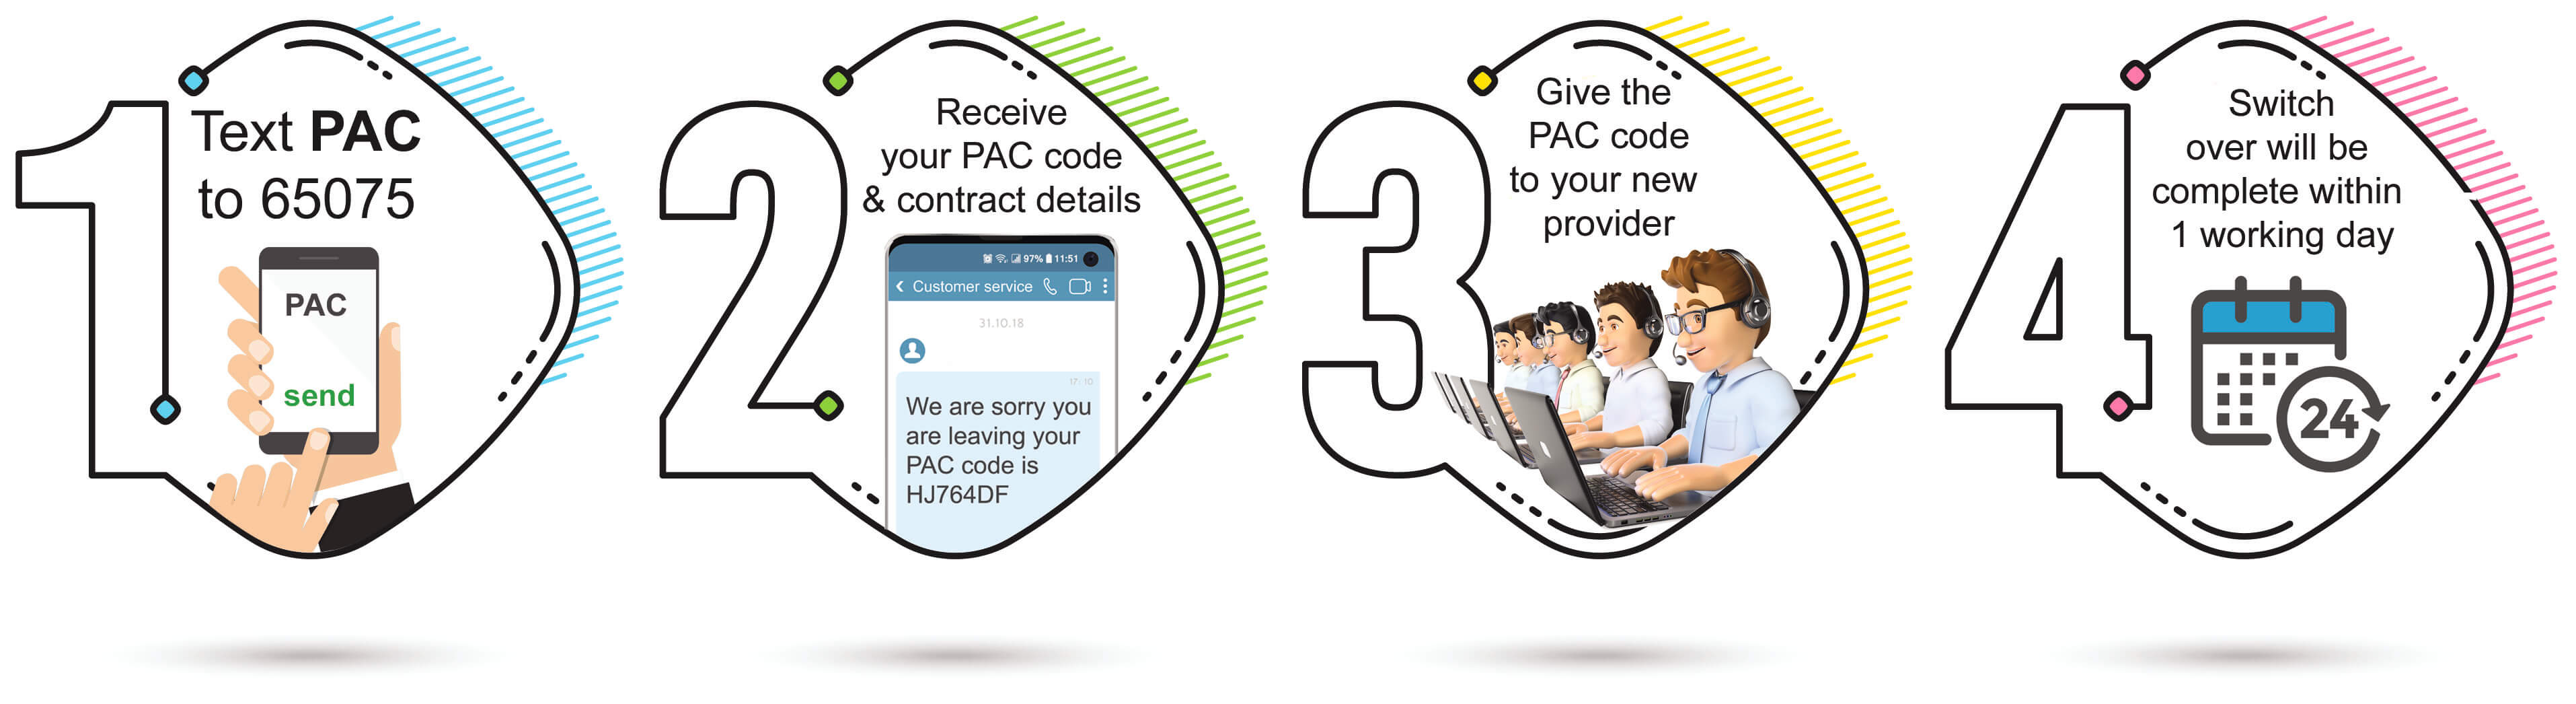 PAC Code guide